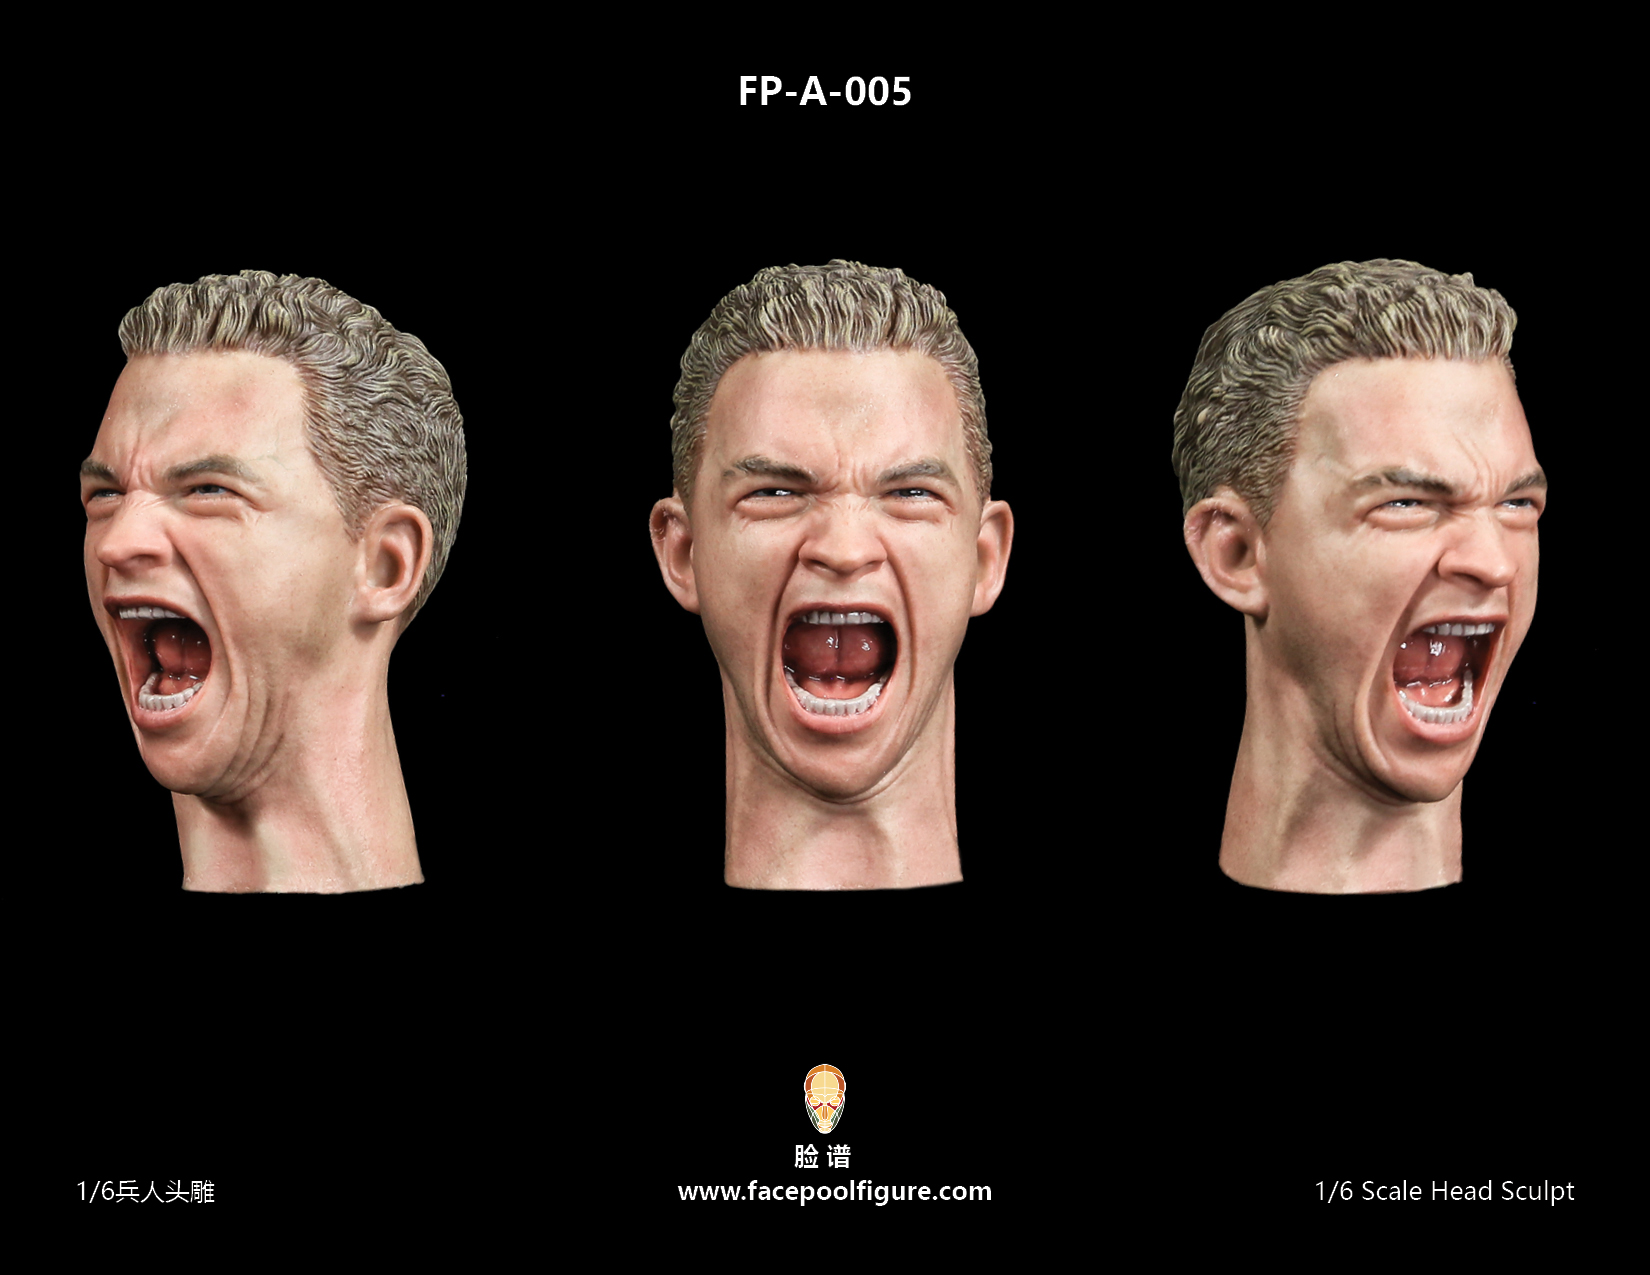 FacepoolFigure 1/6 Male Head Sculpt With Expression FP-A-005